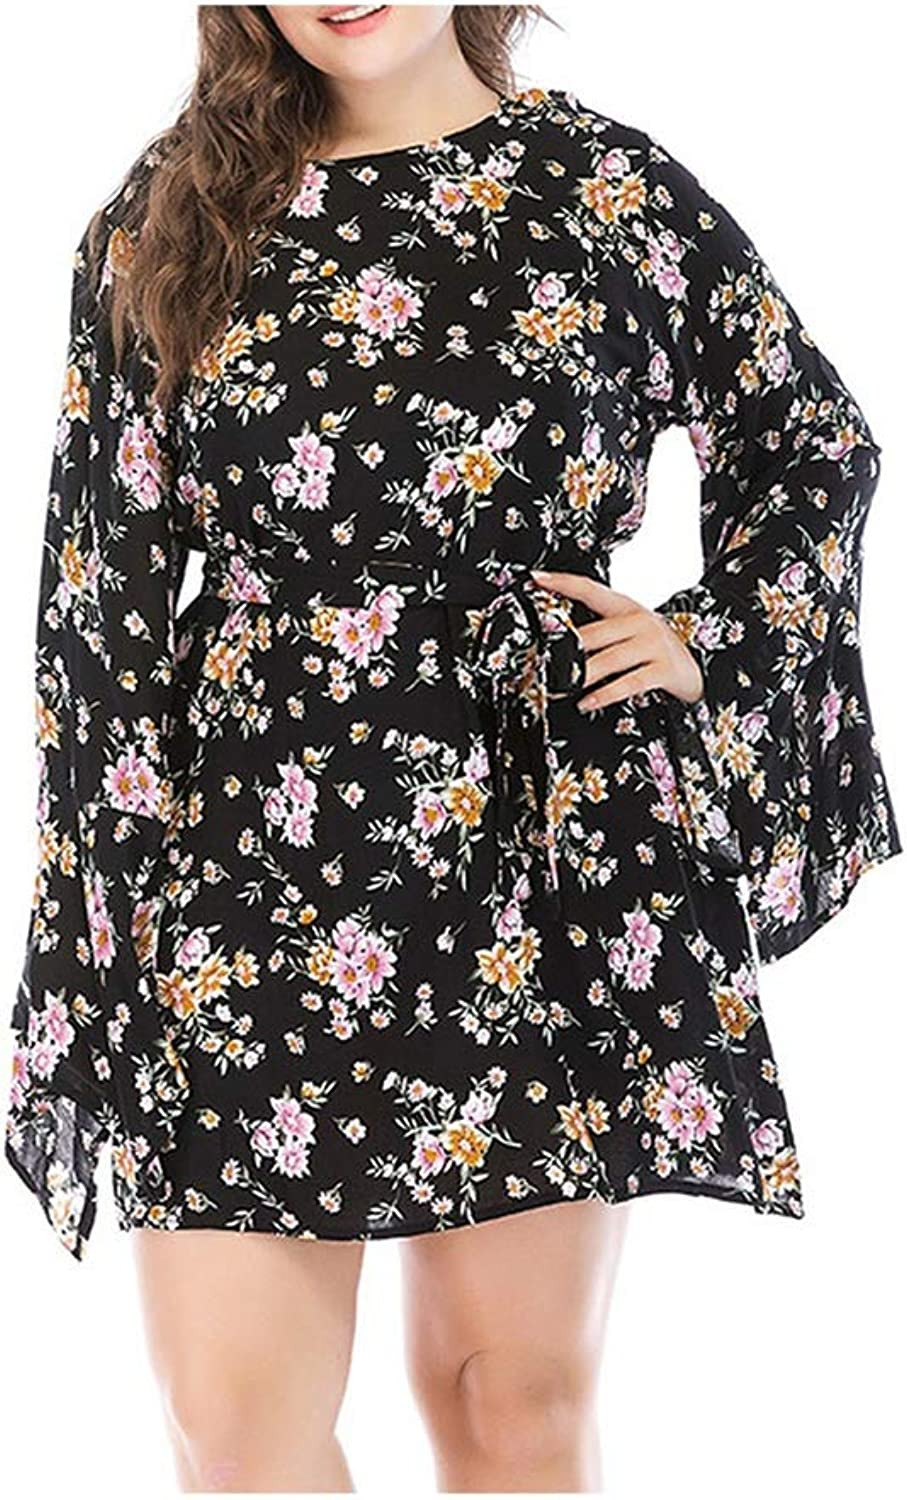 PerfectMood Women Dress Casual Long Sleeves Dresses Sashes Print Empire Line ONeck Summer White Flower Dress